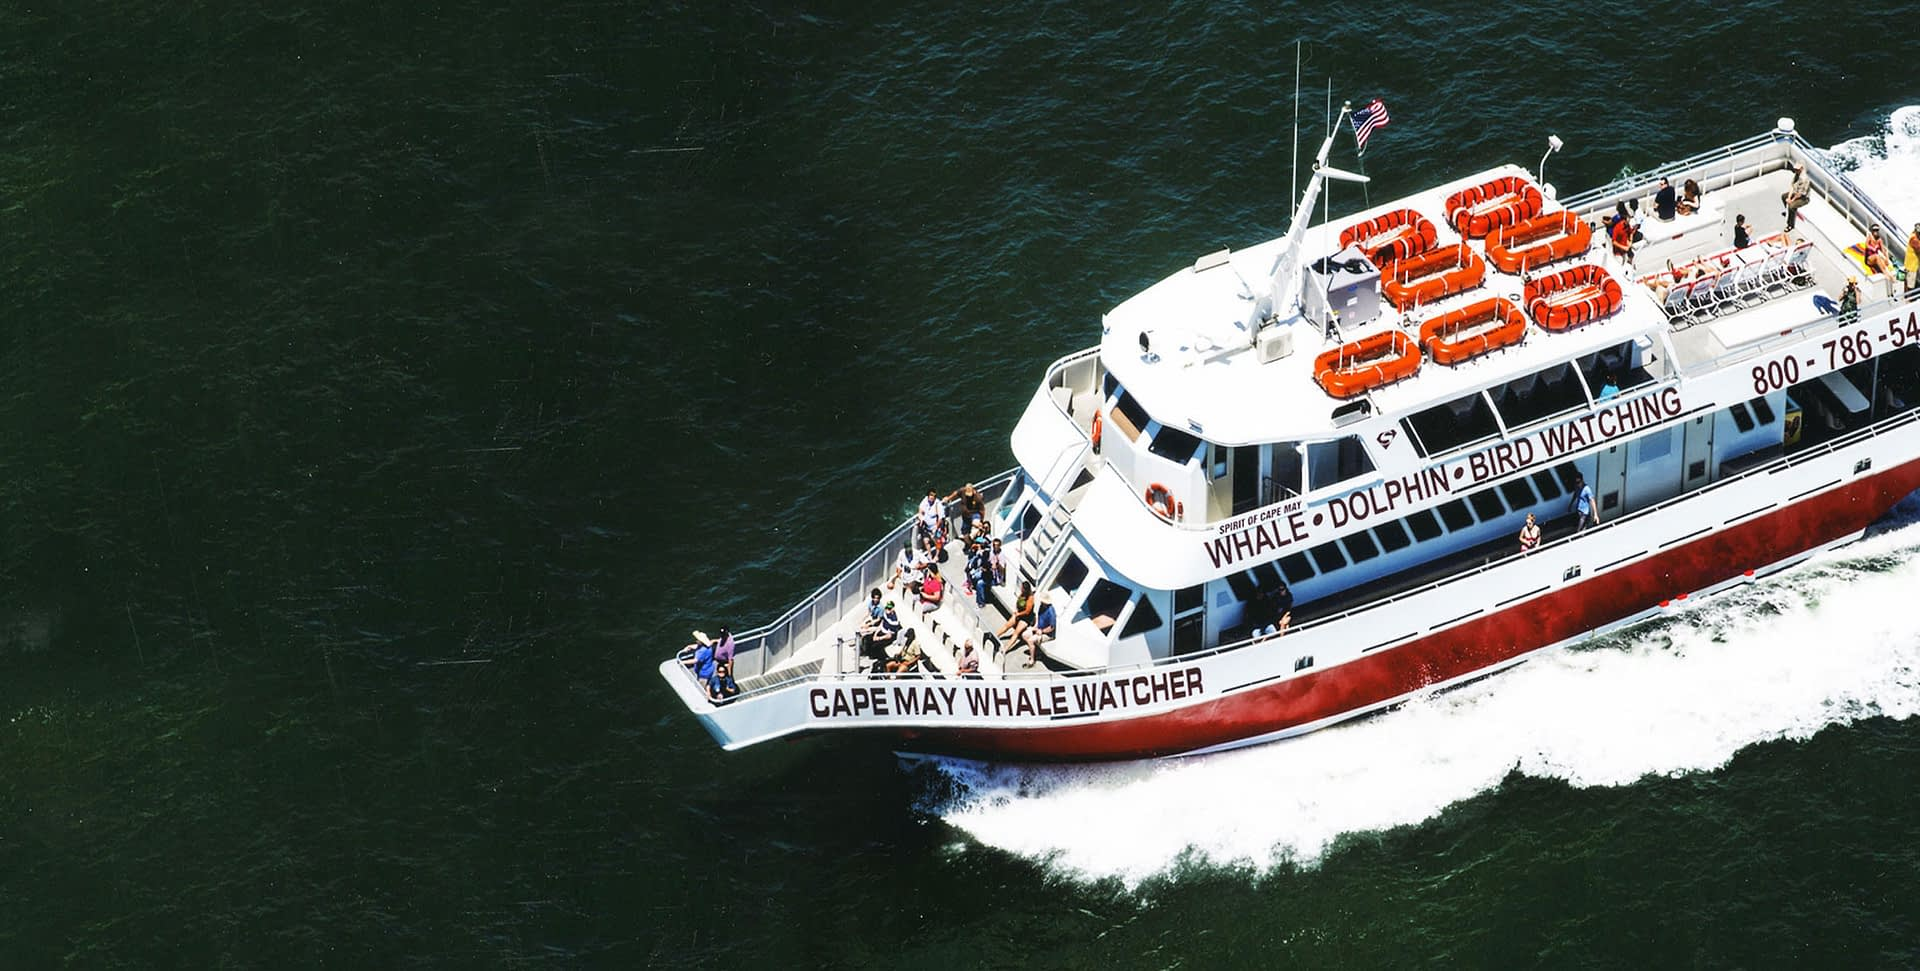 Whale Watching & Dolphin Watching Cruises in Cape May, NJ